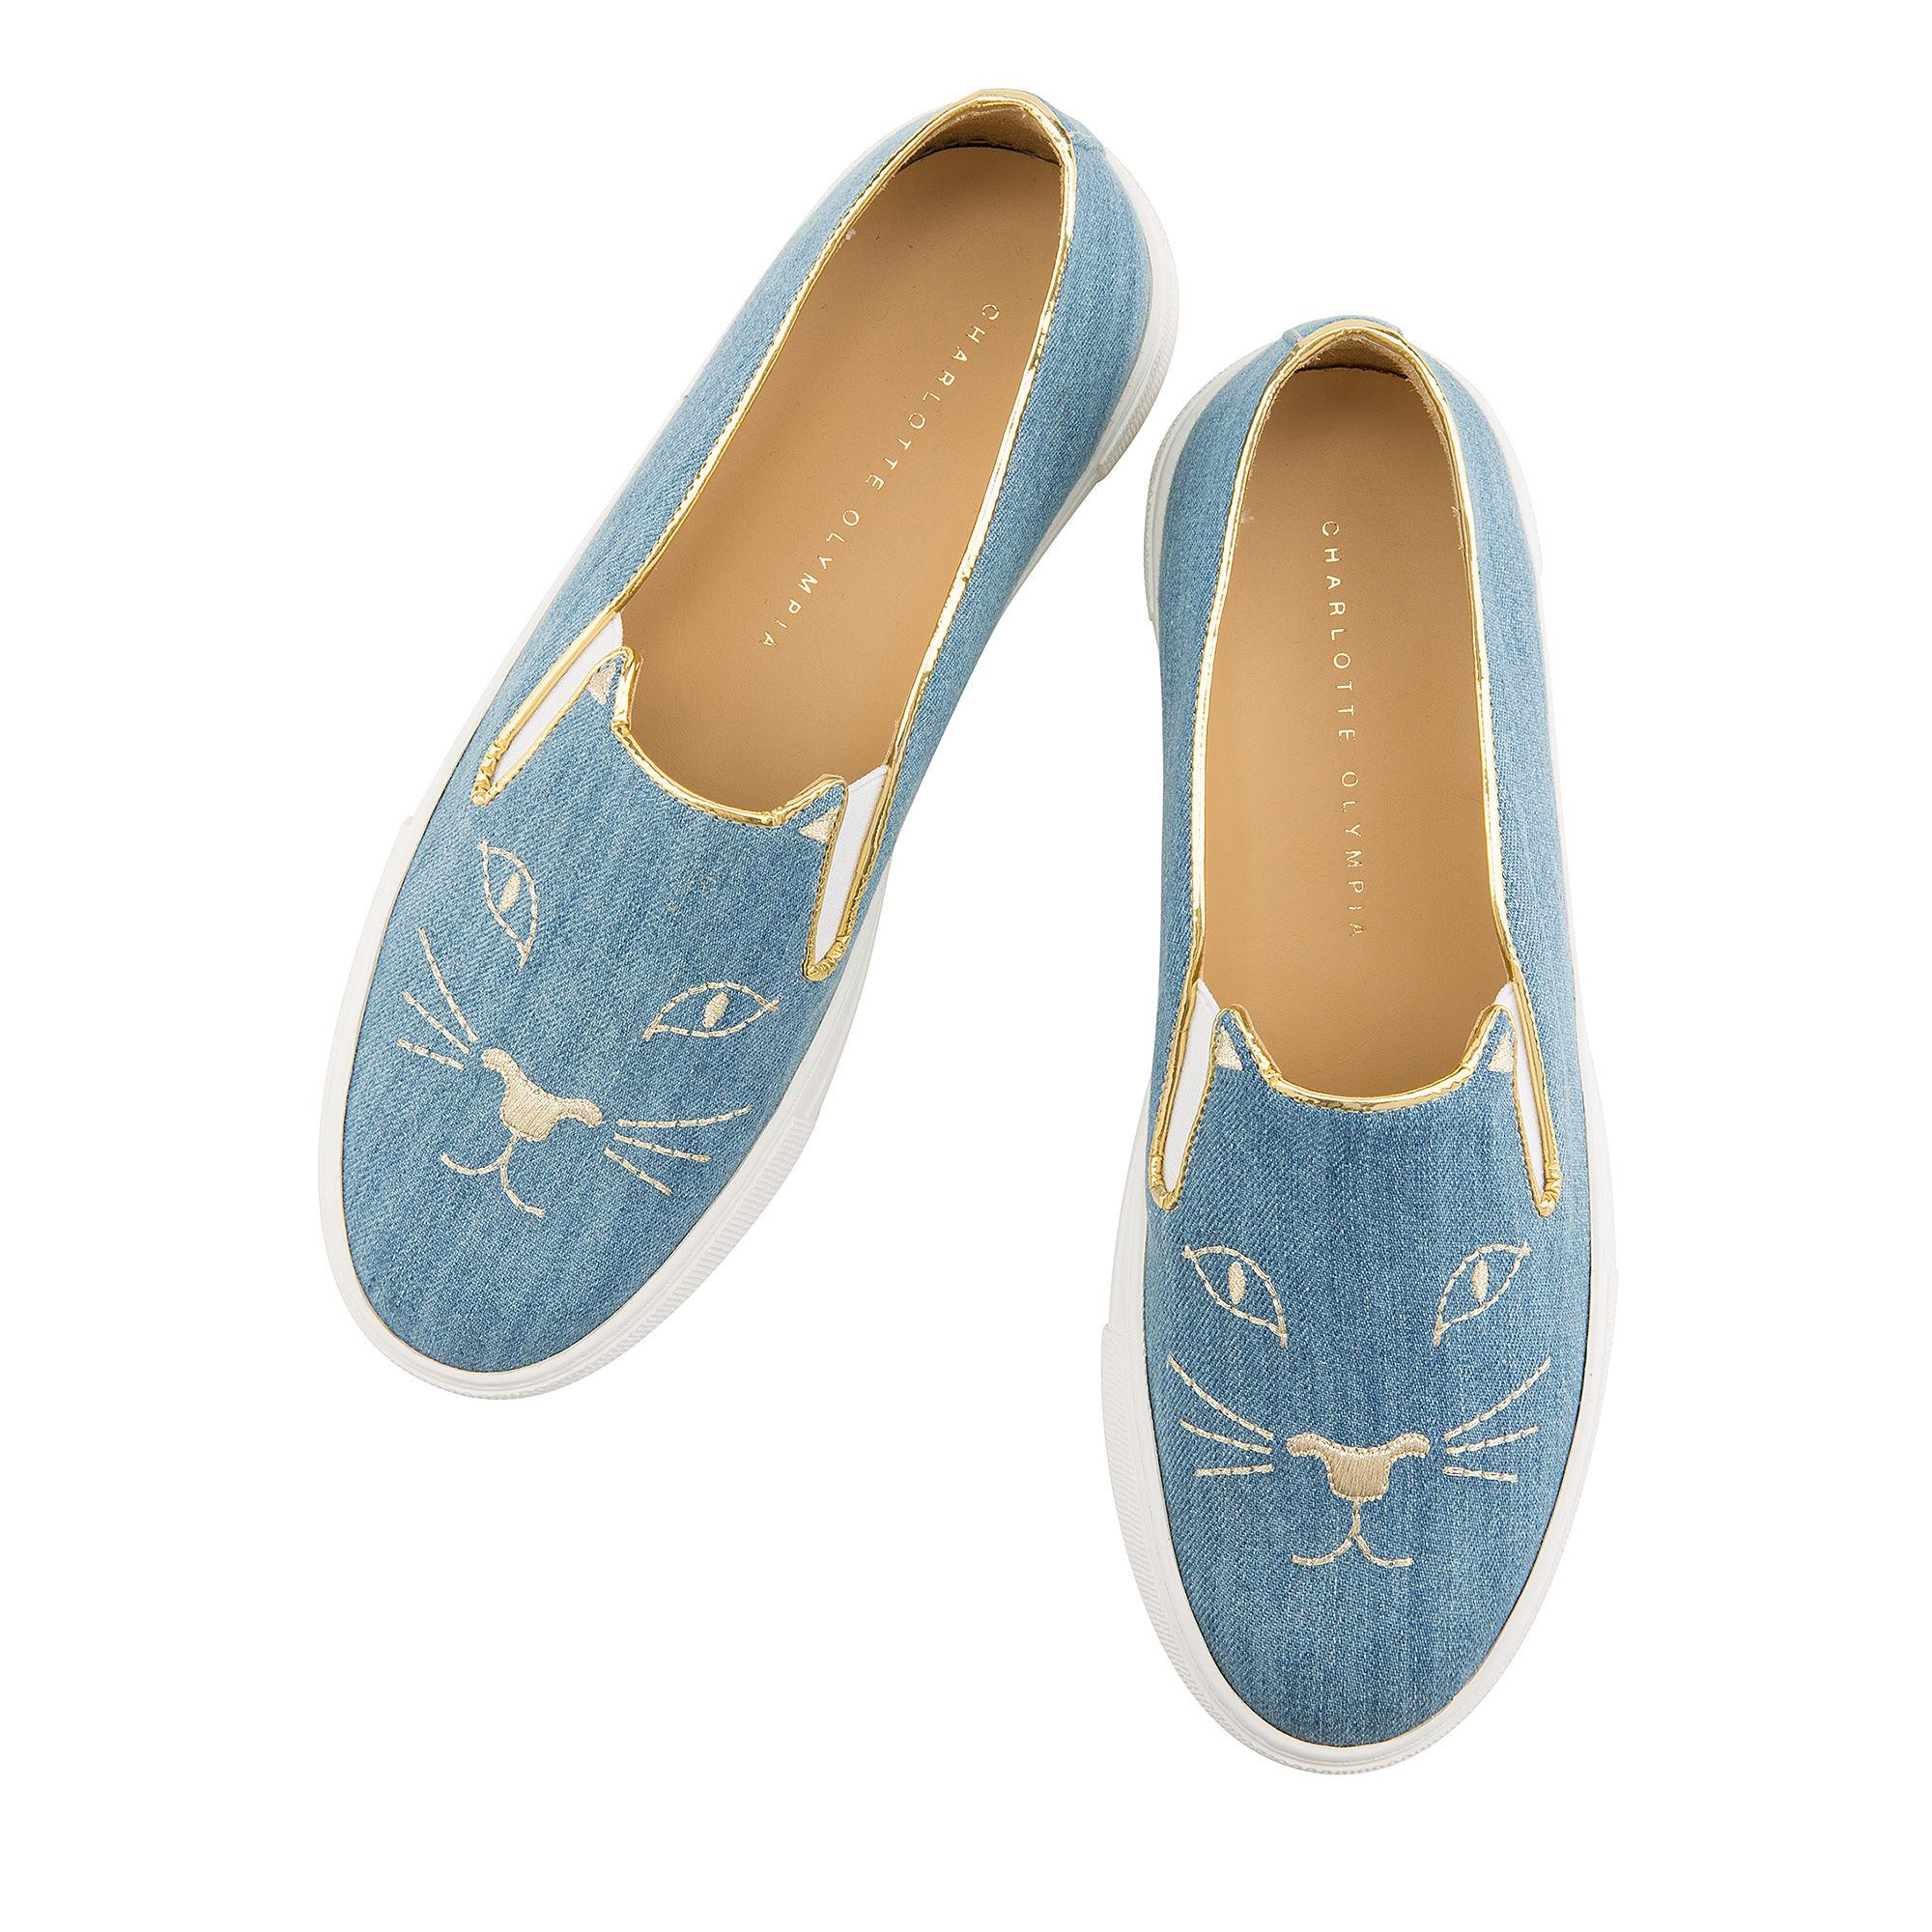 Charlotte Olympia Cool Cats 30